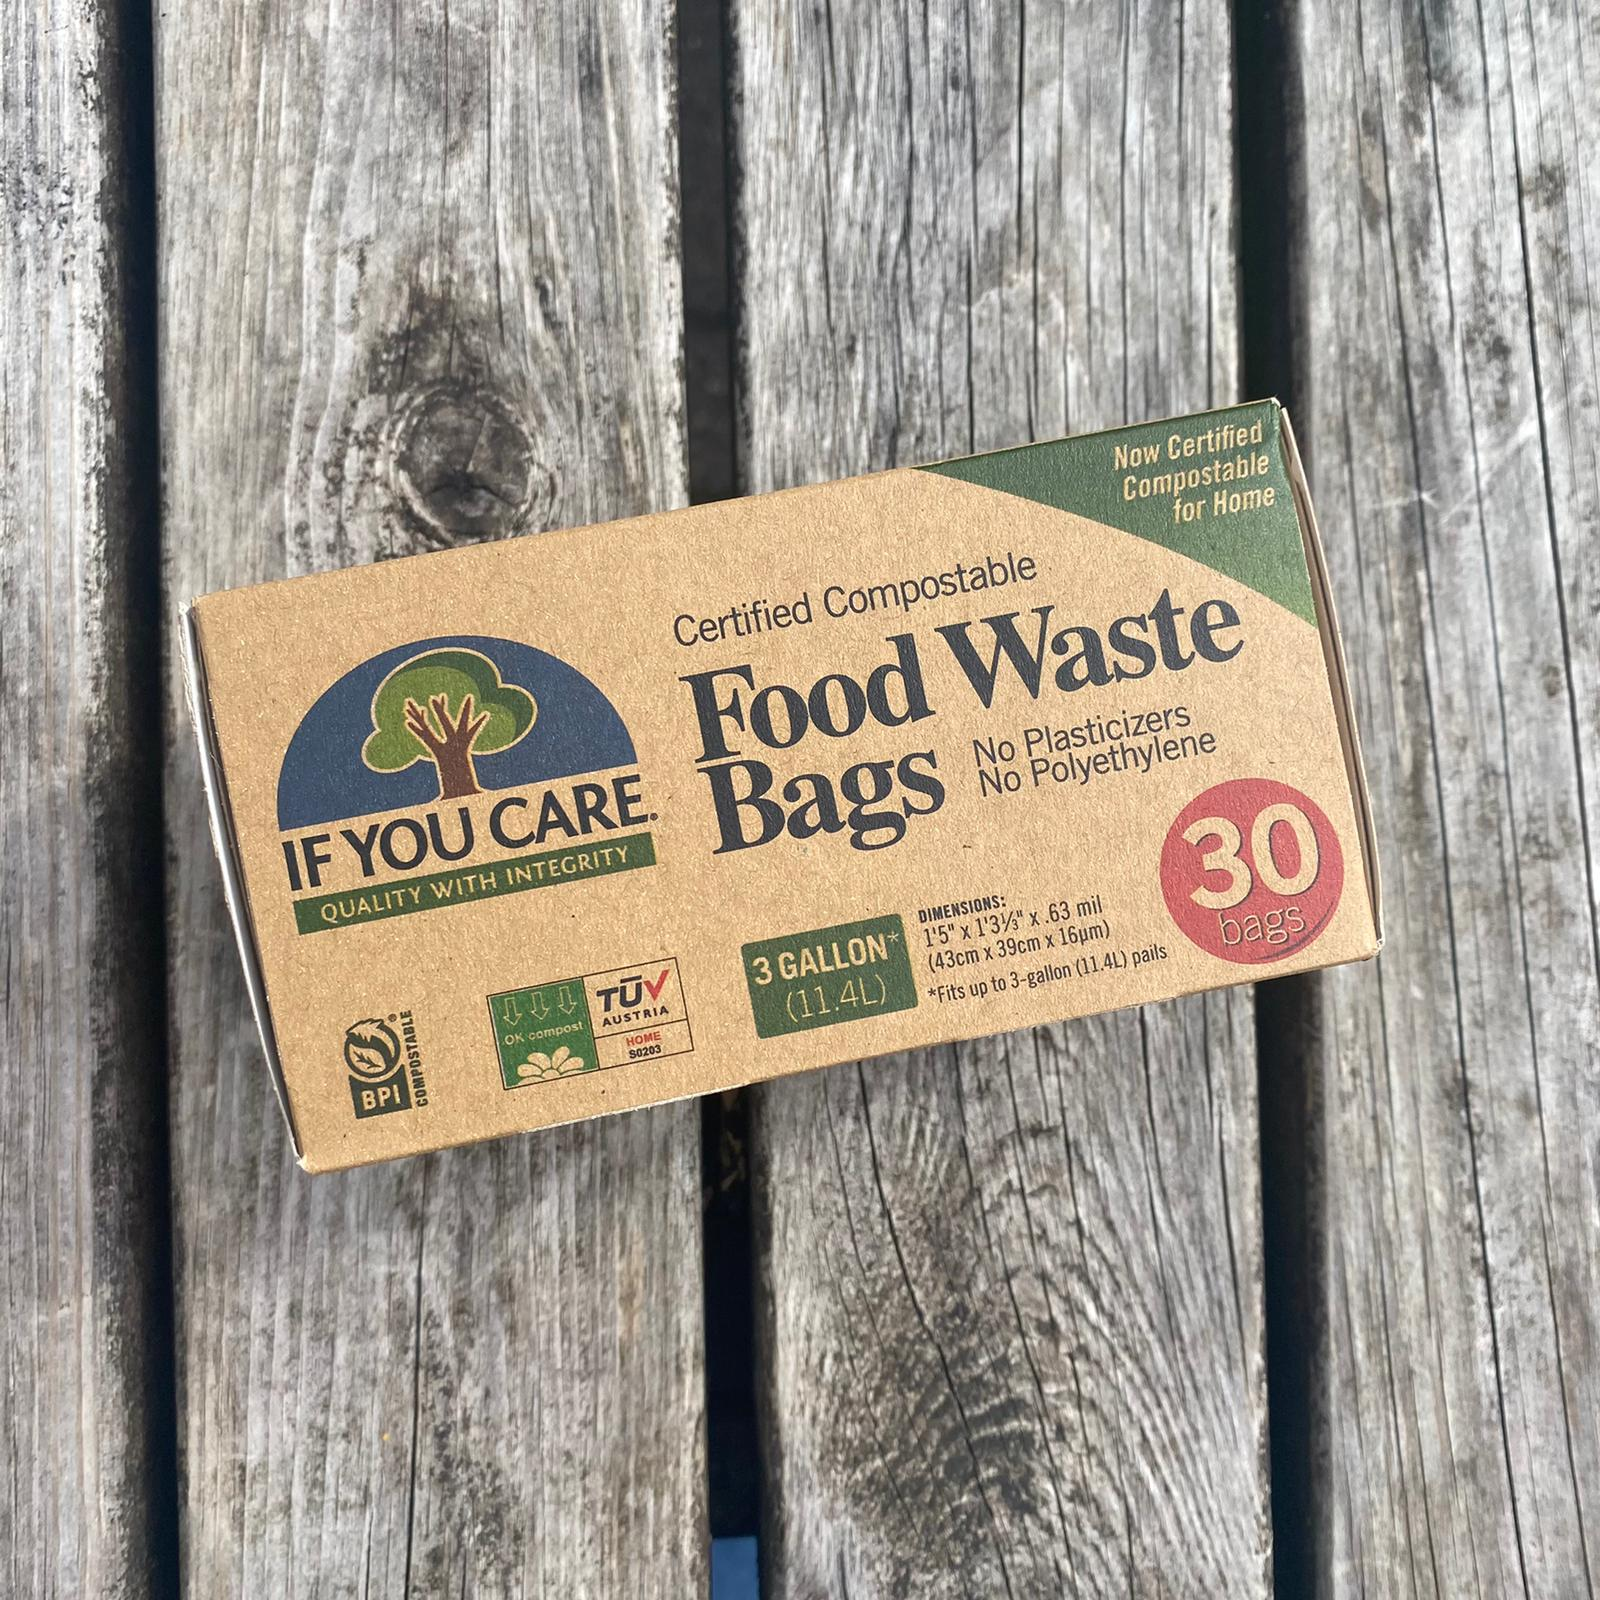 Compostable Food Waste Bags   If You Care